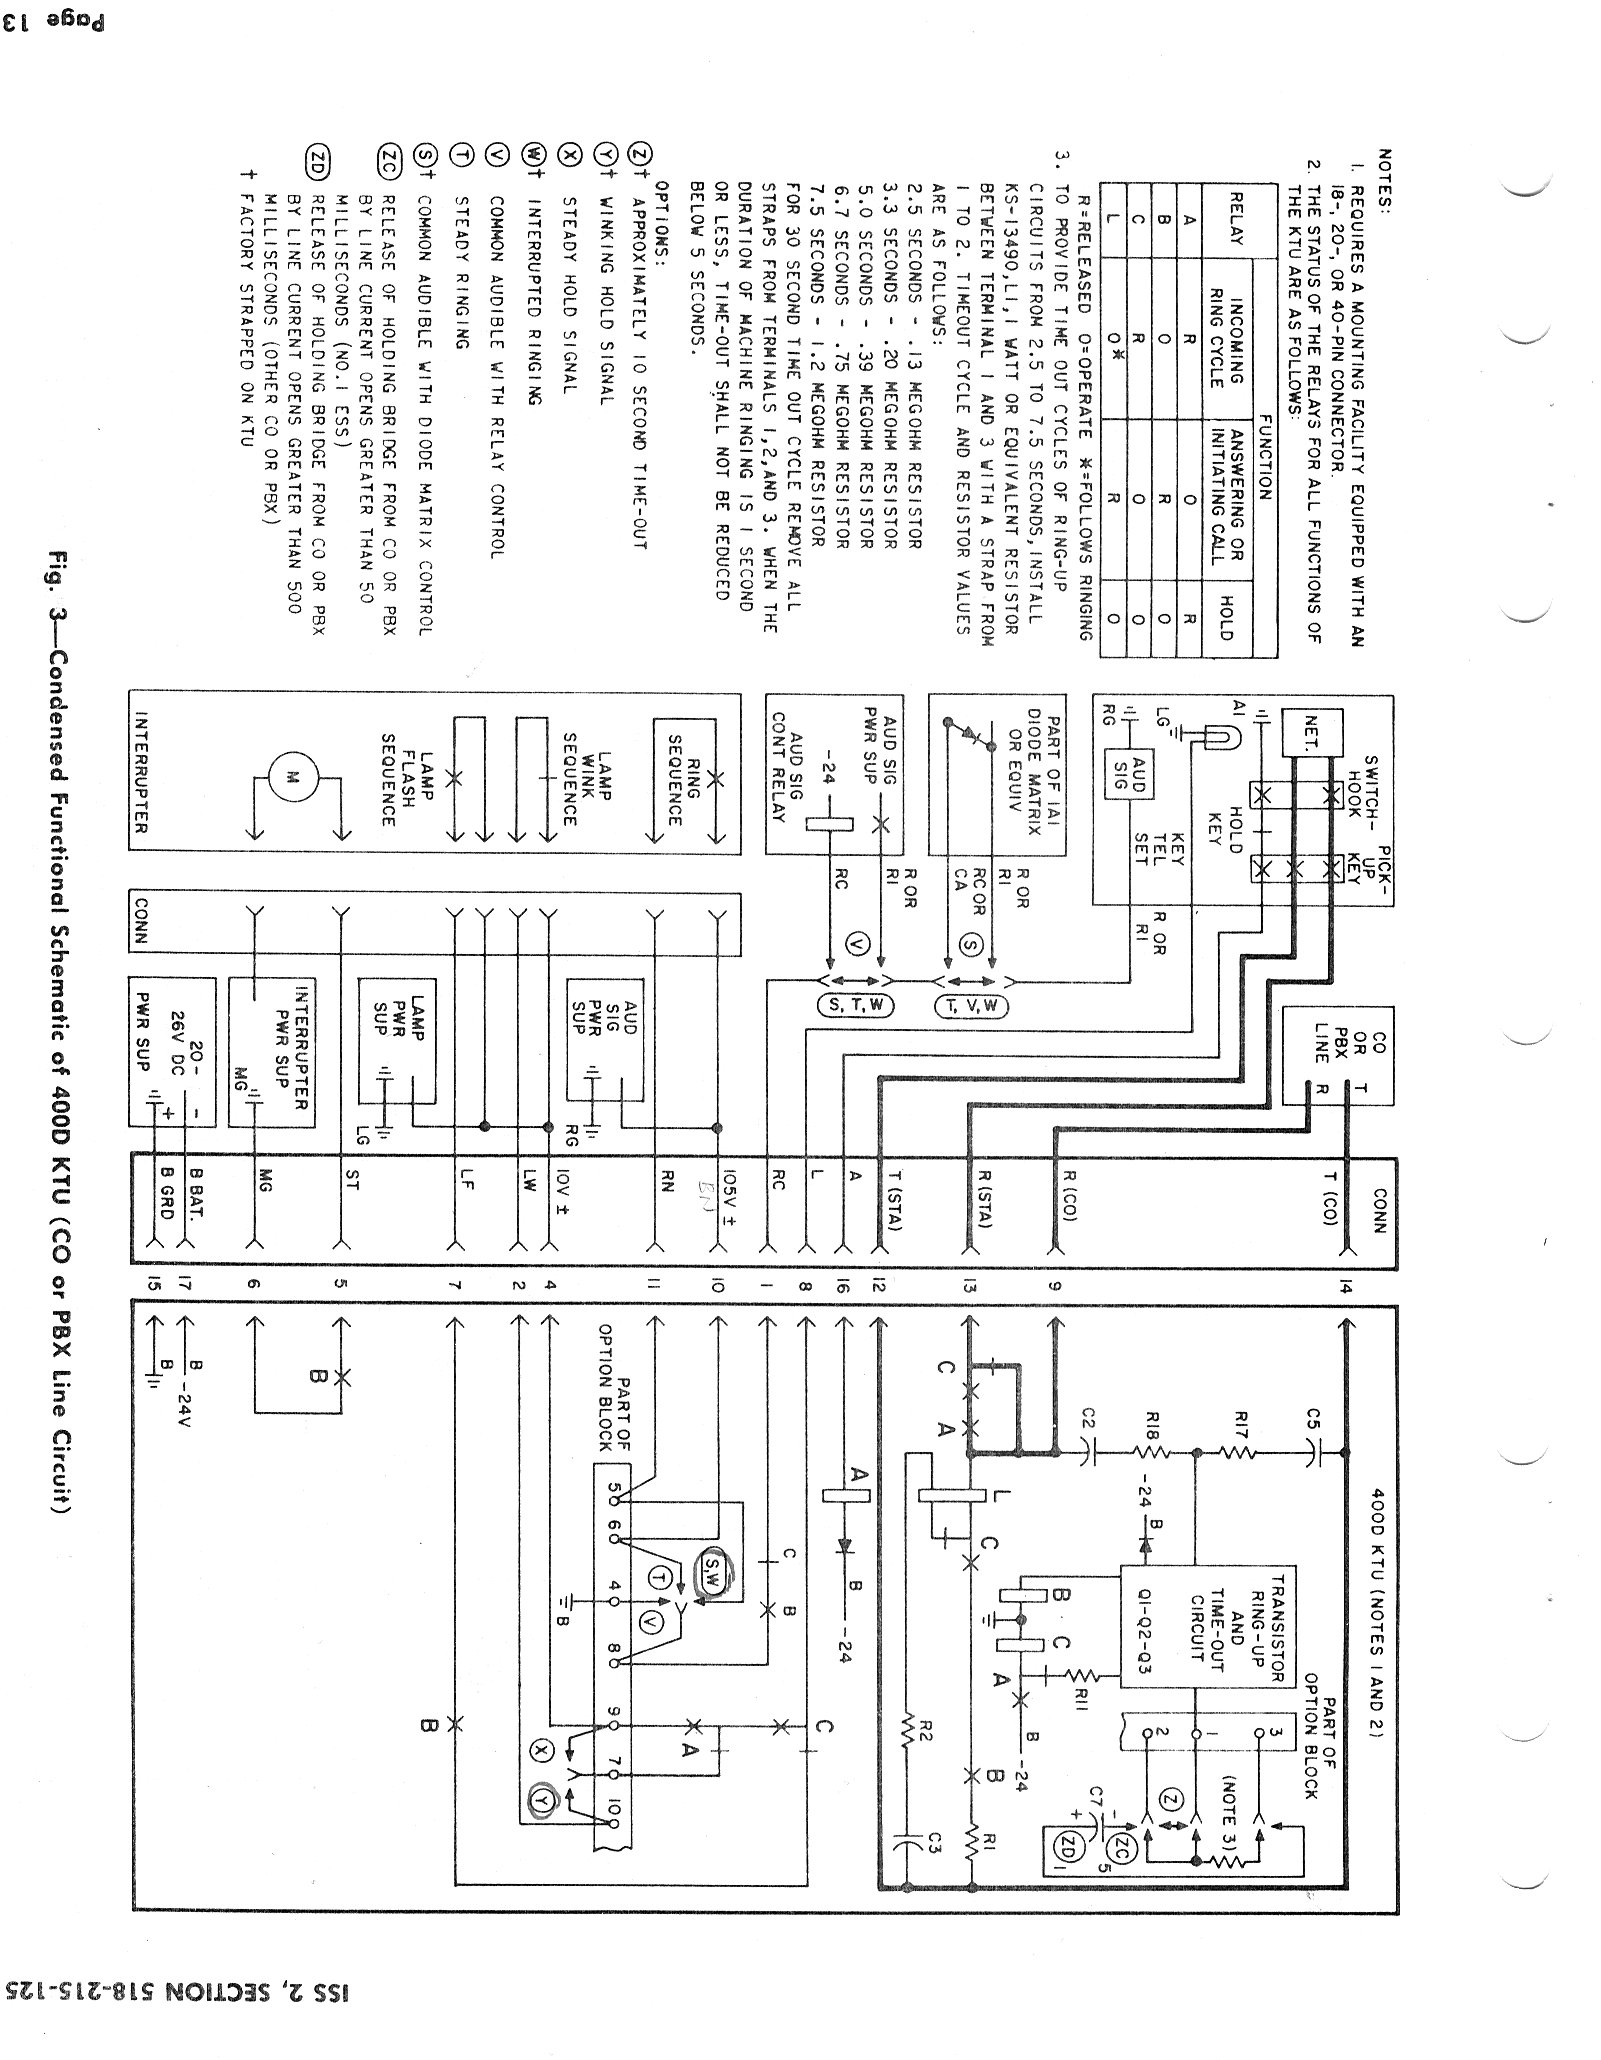 400d pbx wiring diagram how to wire a pbx phone system \u2022 wiring ps-802-24 wiring diagram at crackthecode.co